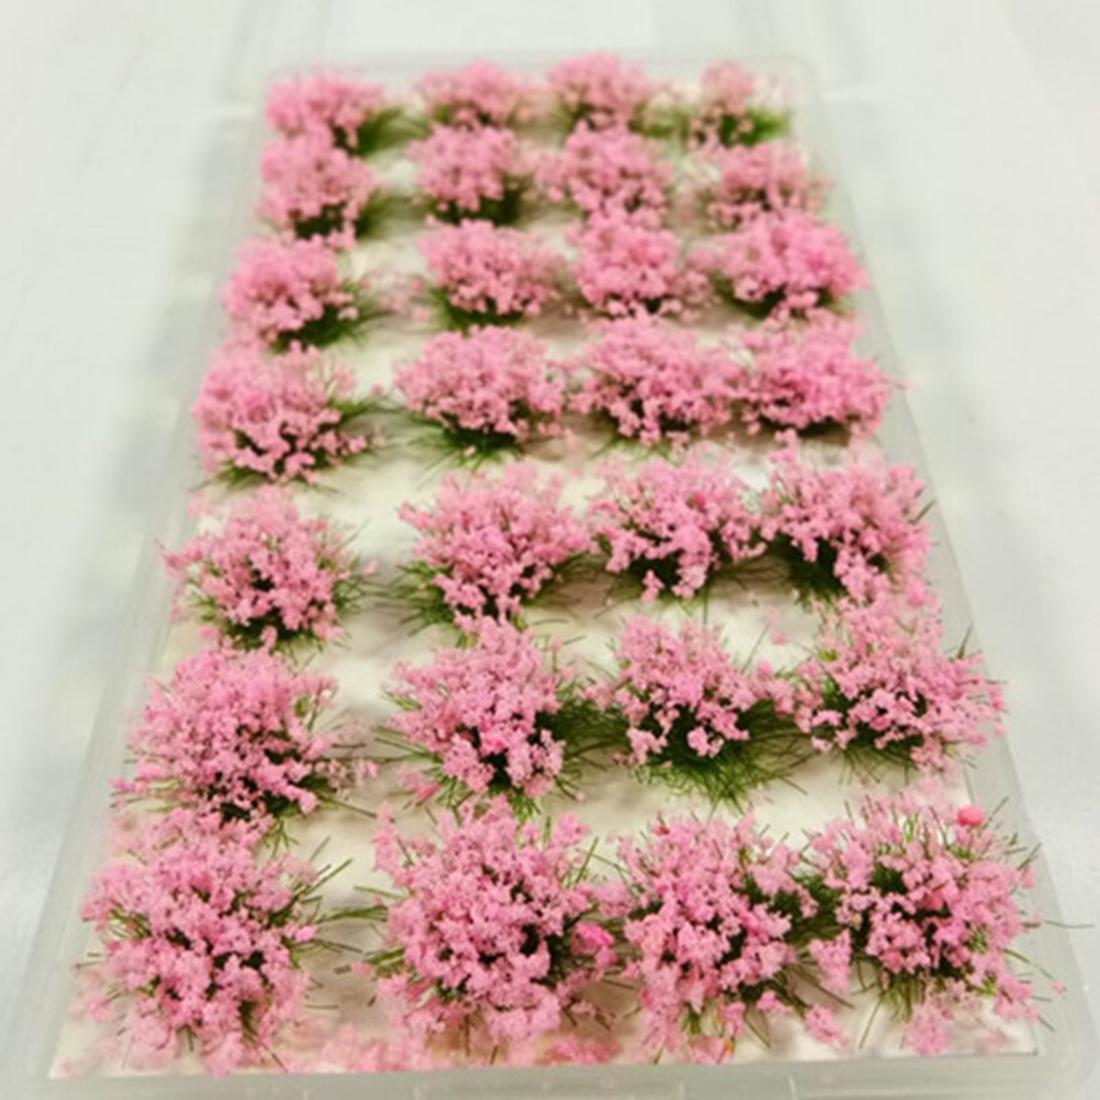 28Pcs Simulation Flower Cluster Flowers Scene Model For 1:35/1:48/1:72/1:87 Scale Sand Table - Green Leaves + Pink Flowers